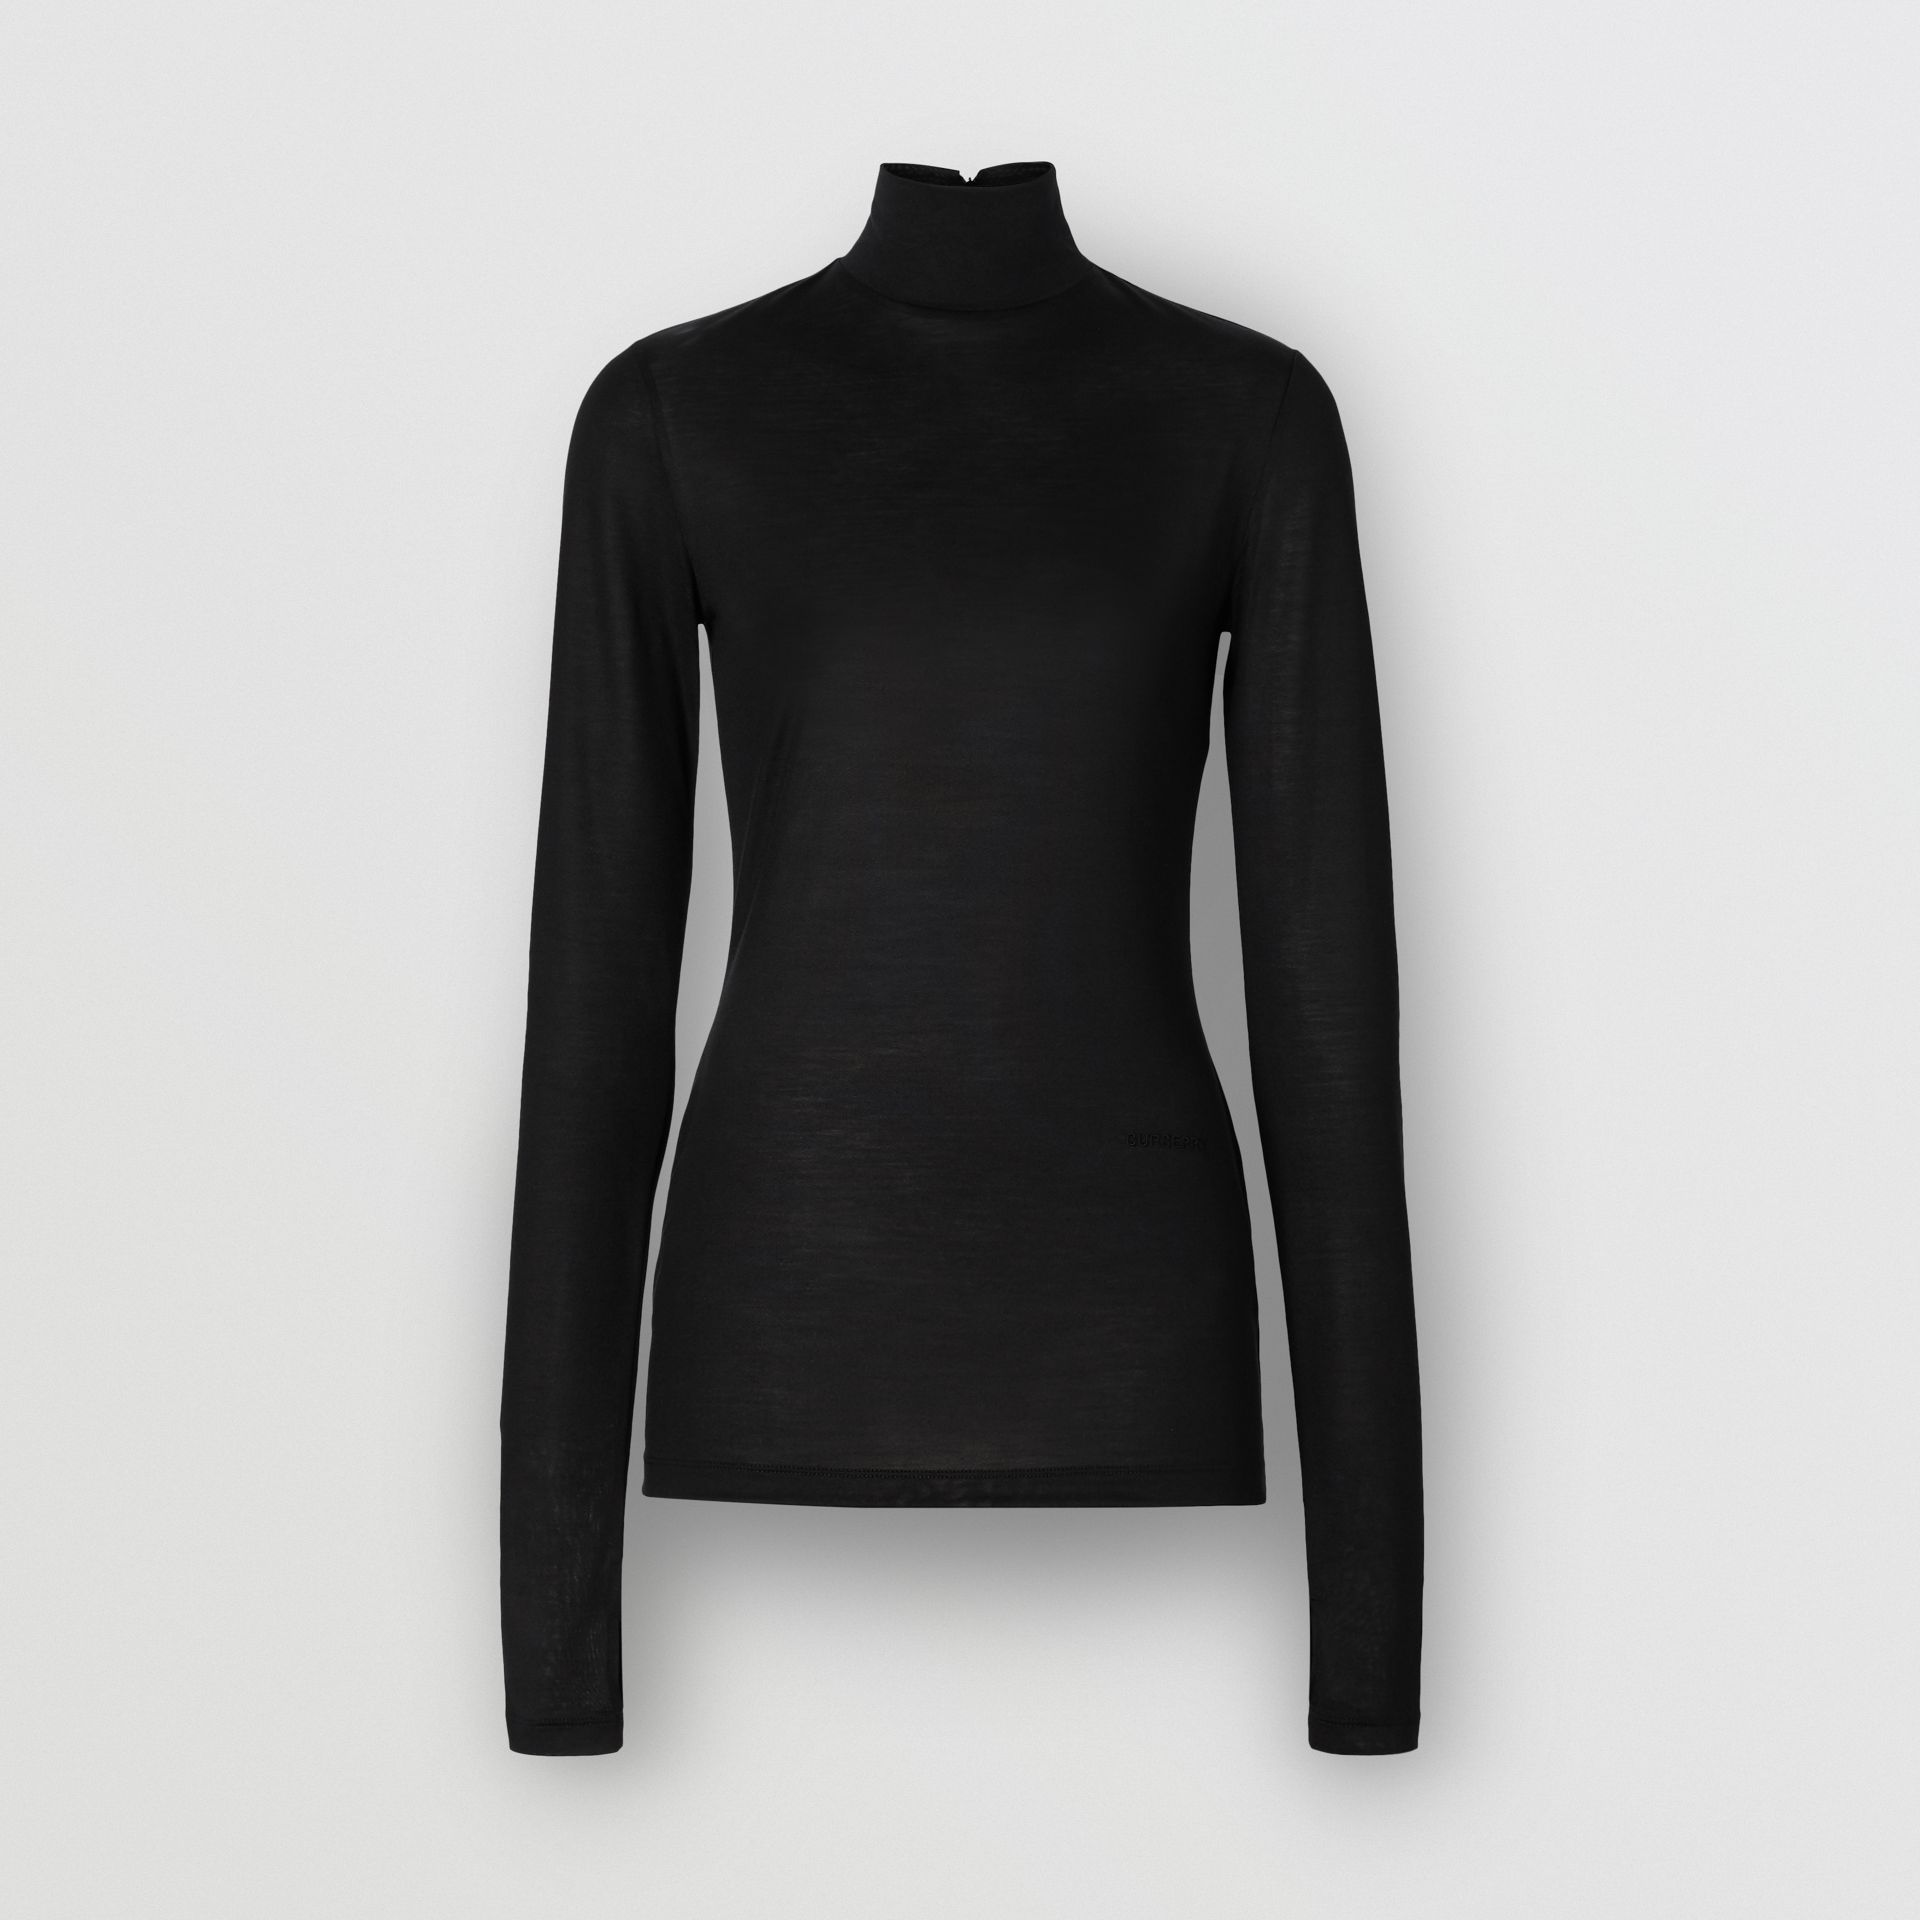 Silk Jersey Turtleneck Top in Black - Women | Burberry - gallery image 3